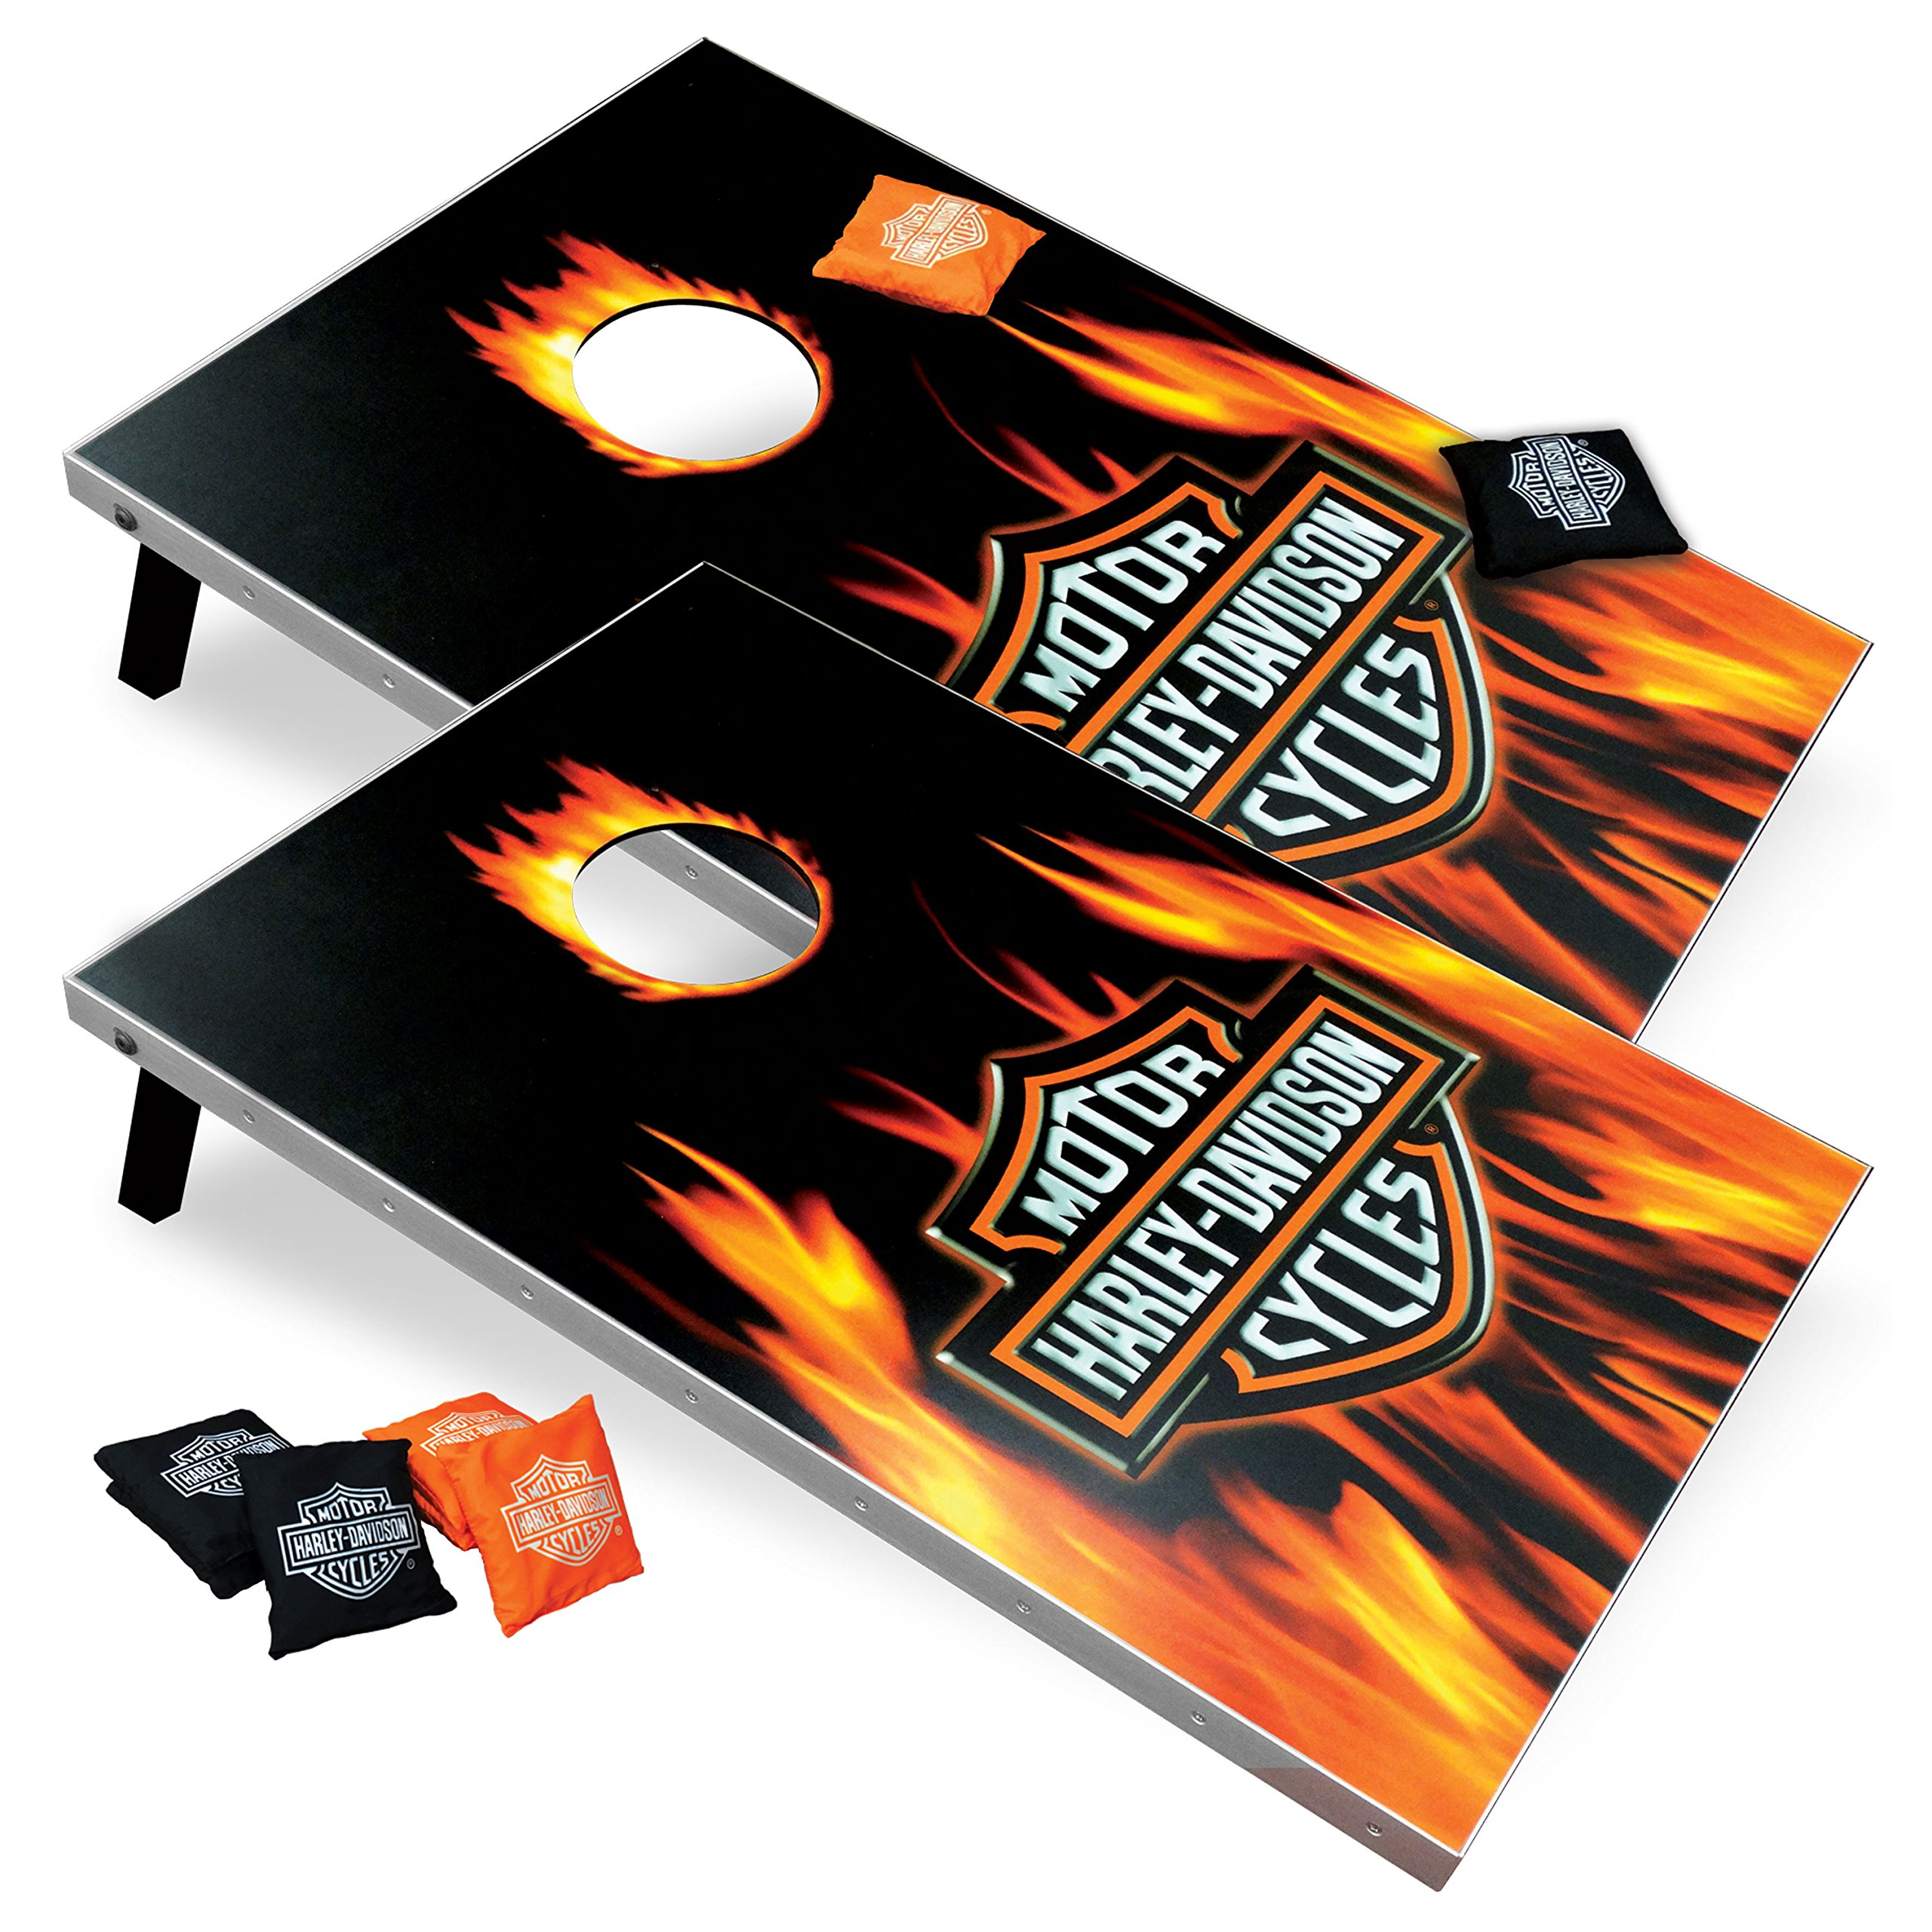 Harley-Davidson 66279 Flame Bar and Shield Bean Bag Toss by Harley-Davidson